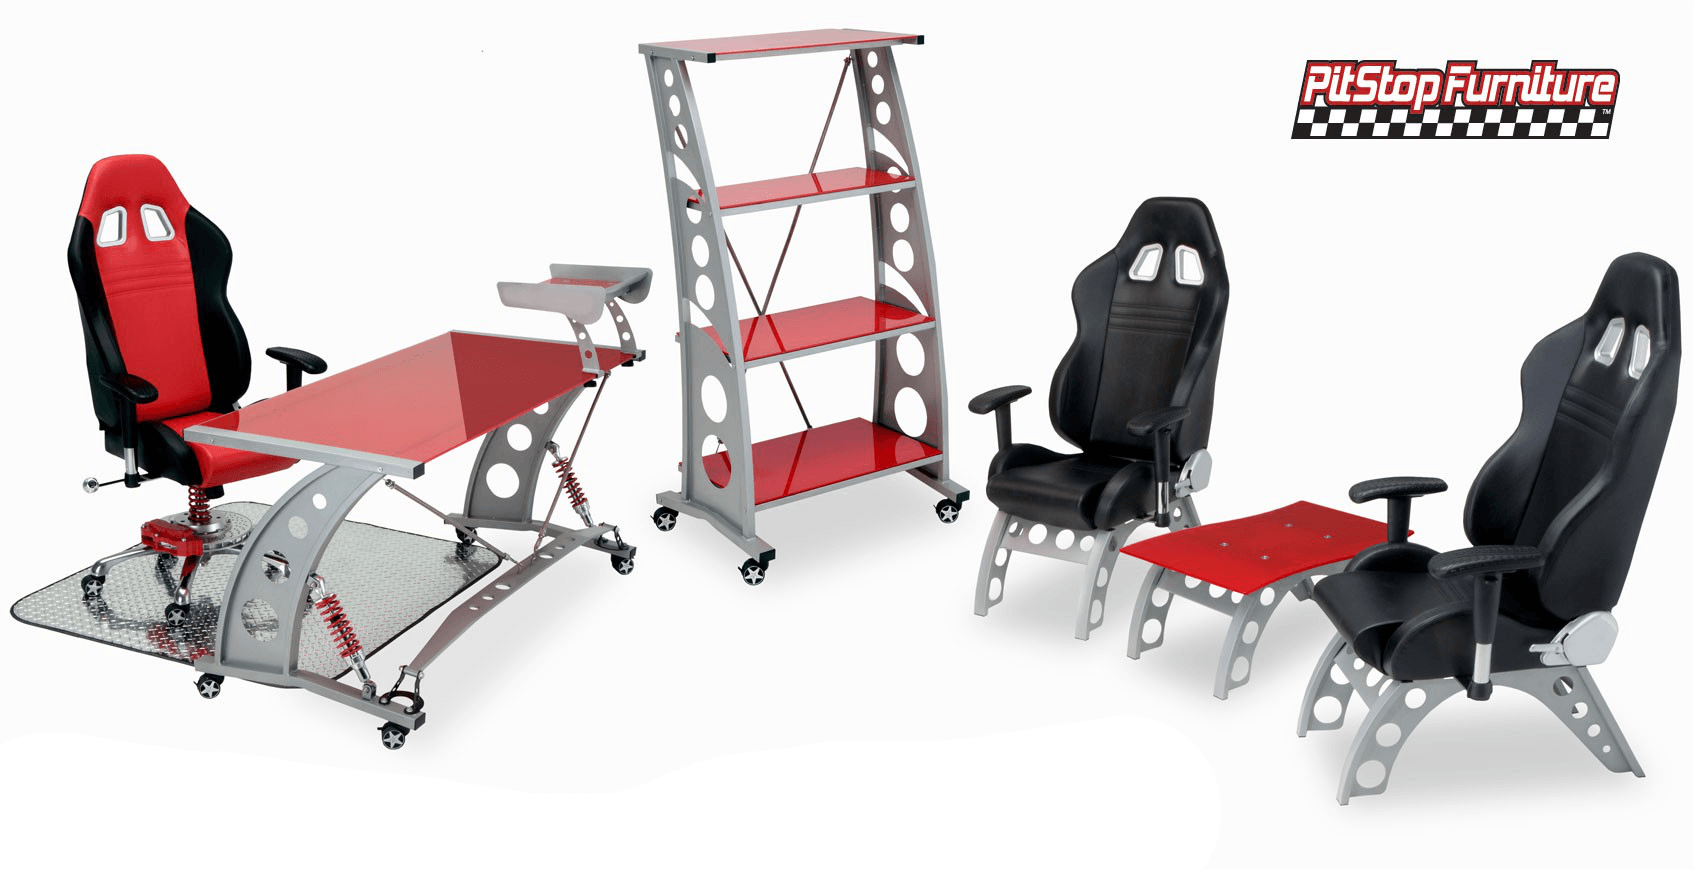 Furniture and Auto Accessories from PitStop Furniture